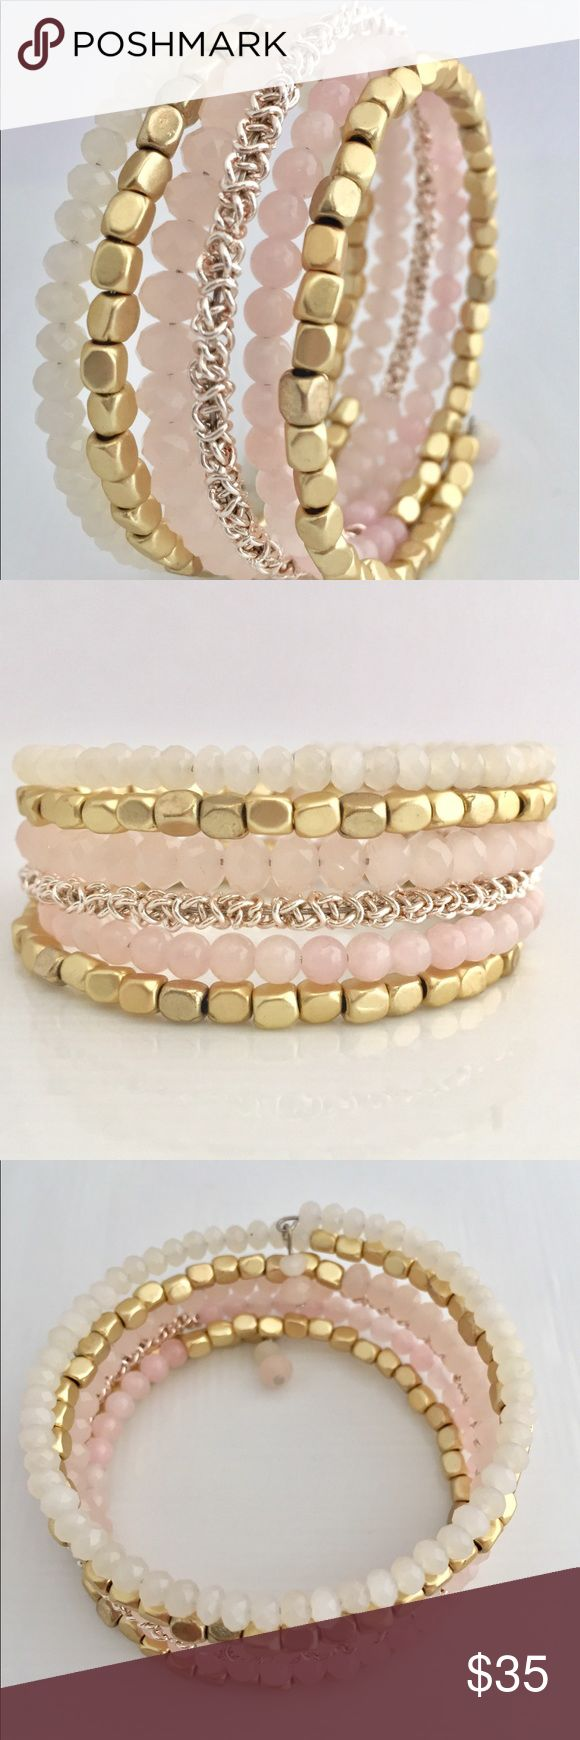 Pink & Gold Stacked Bracelet This design was made to drape elegantly around the wrist for instant evening dazzle or with a cute summer day dress.     D E T A I L S:  •Memory wire is easy to wear and to slip on and off; it keeps its shape beautifully.                              M A T E R I A L S:  • Memory wire, silver-plated tempered stainless steel, 7 in.bracelet • 2mm Light Pink Crystal glass Rondelle Faceted Beads • 4mm Light Pink Crystal glass Rondelle Faceted Beads • 4mm Light Pink…